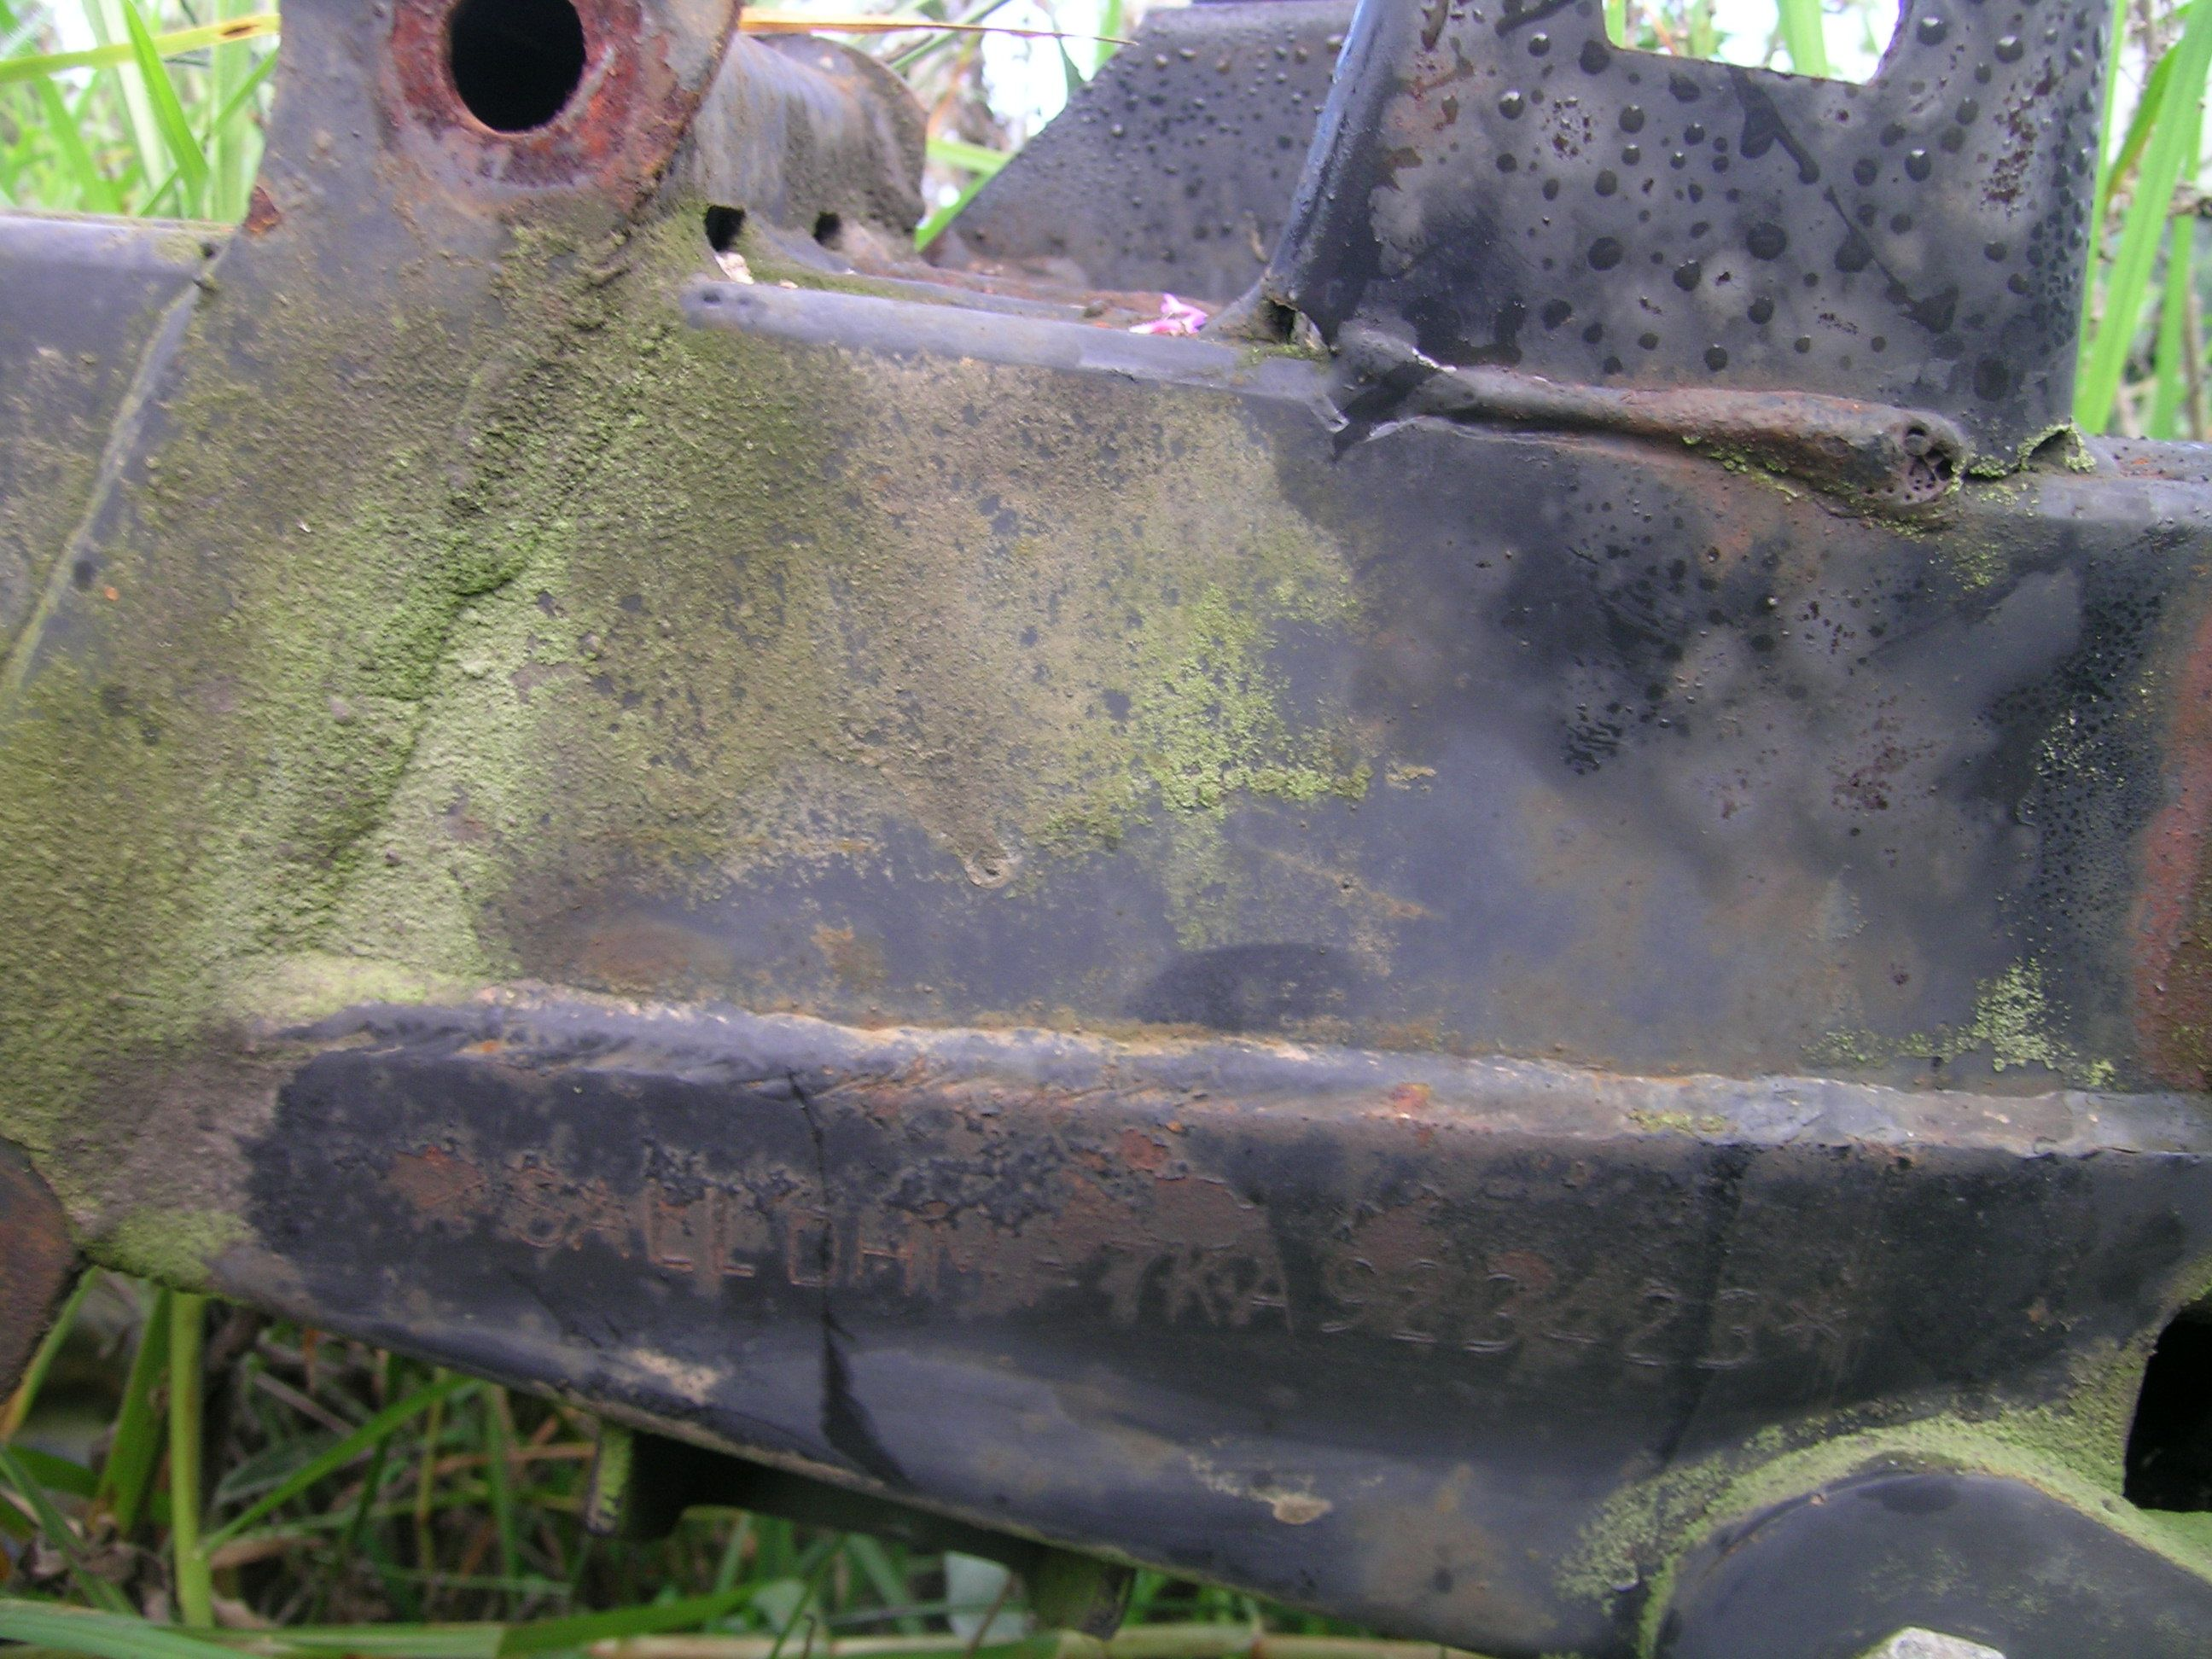 How to check your Landy chassis number